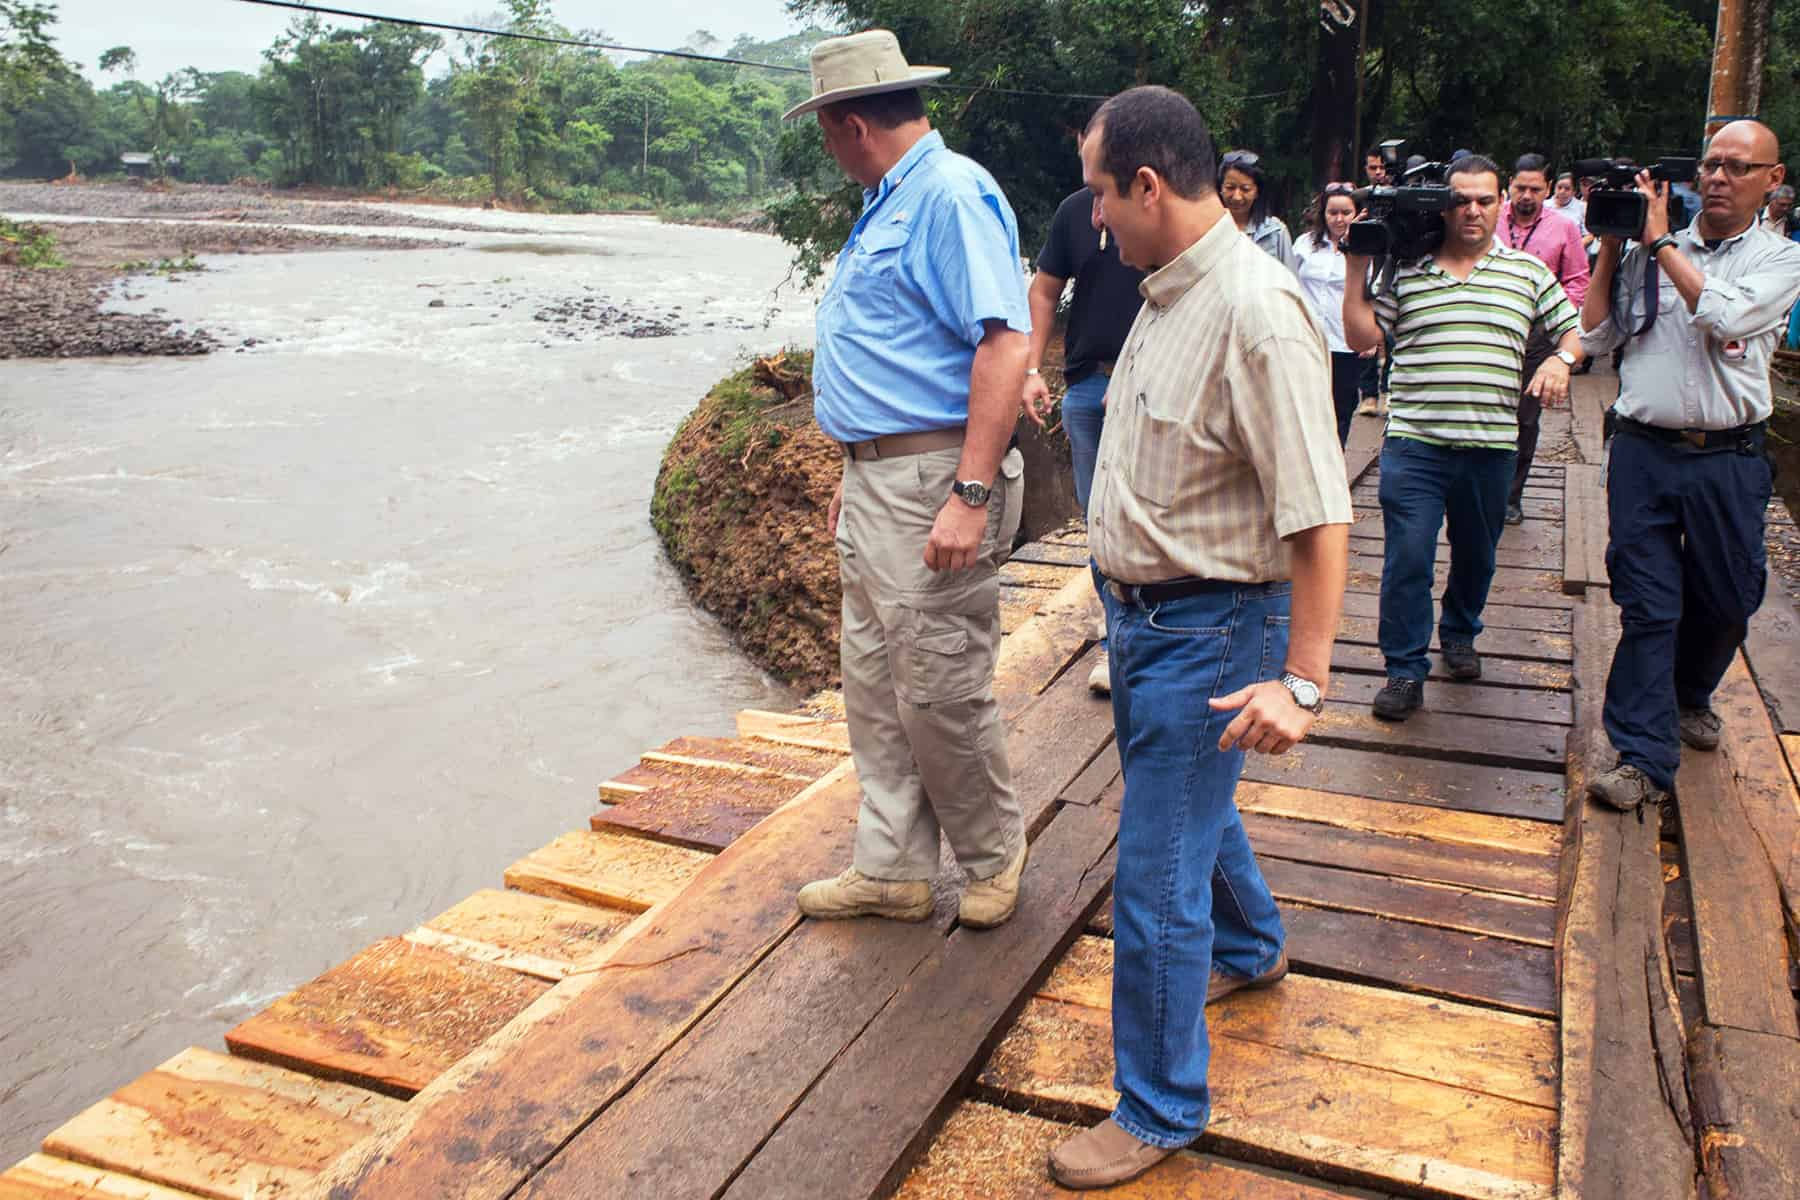 President Luis Guillermo Solís at Sarapiquí, June 2015.